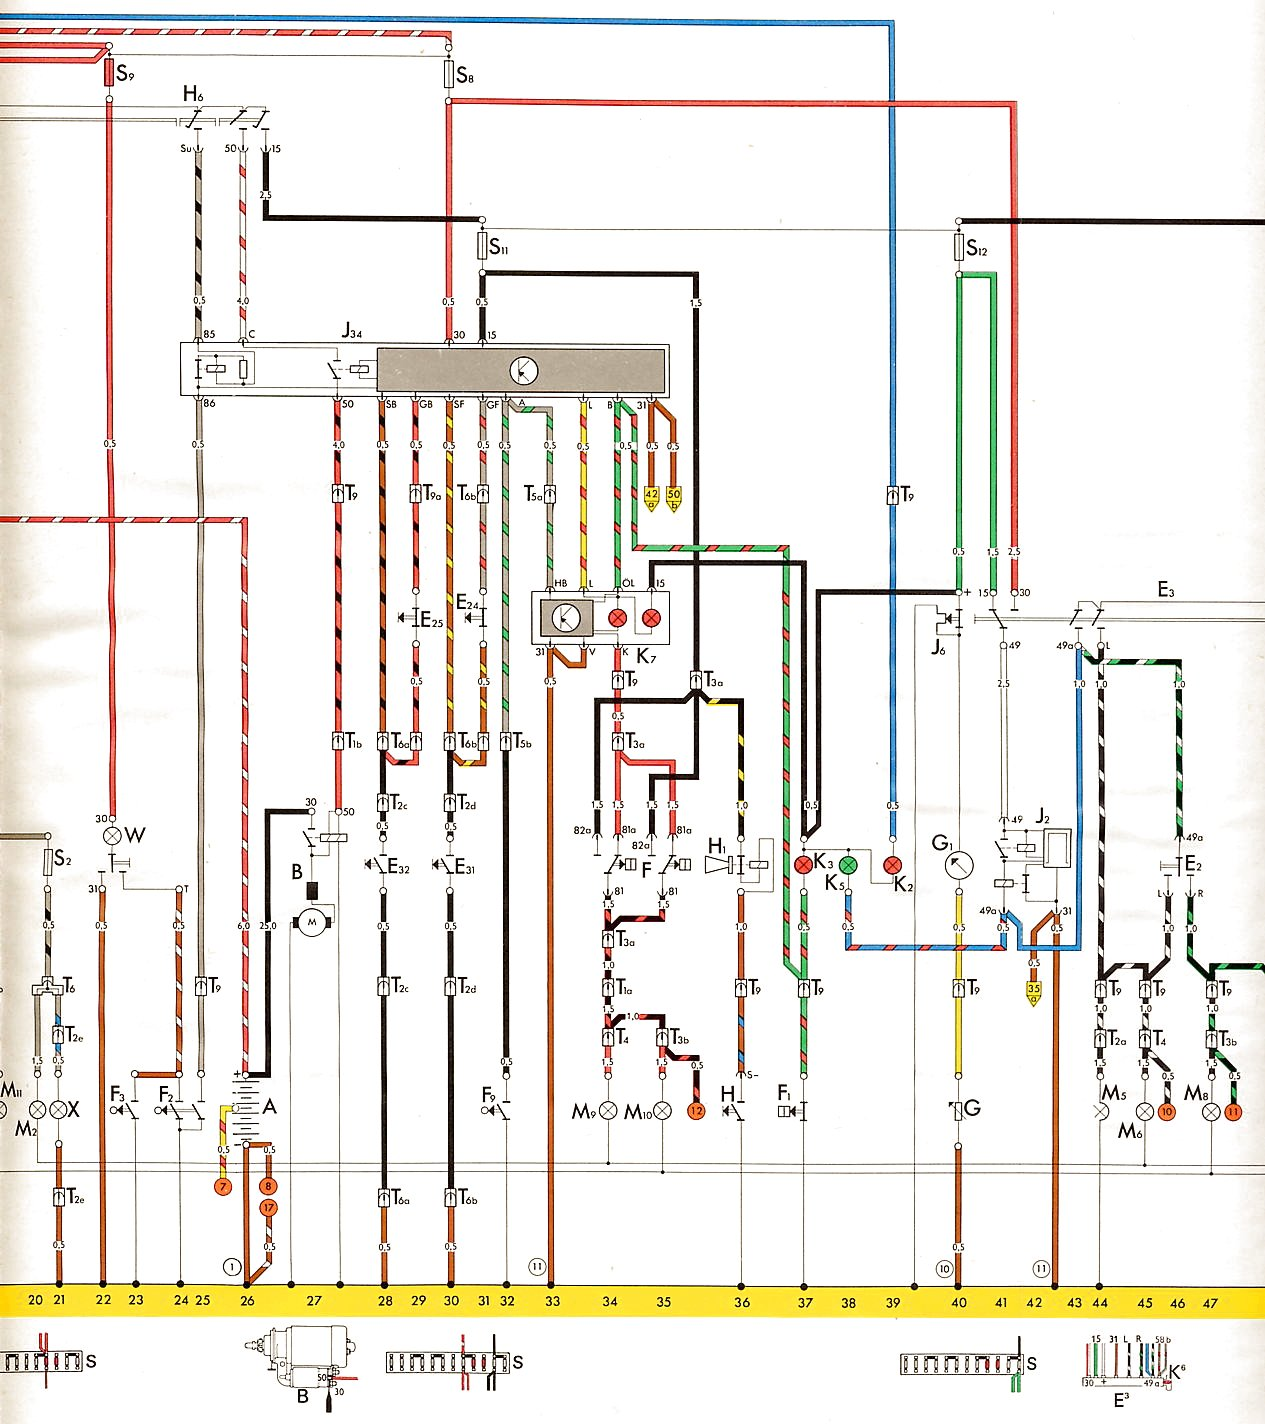 Tech Vw Rebel Wiring Harness Guide And Troubleshooting Of Kits Pioneer Diagram Elsalvadorla 2013